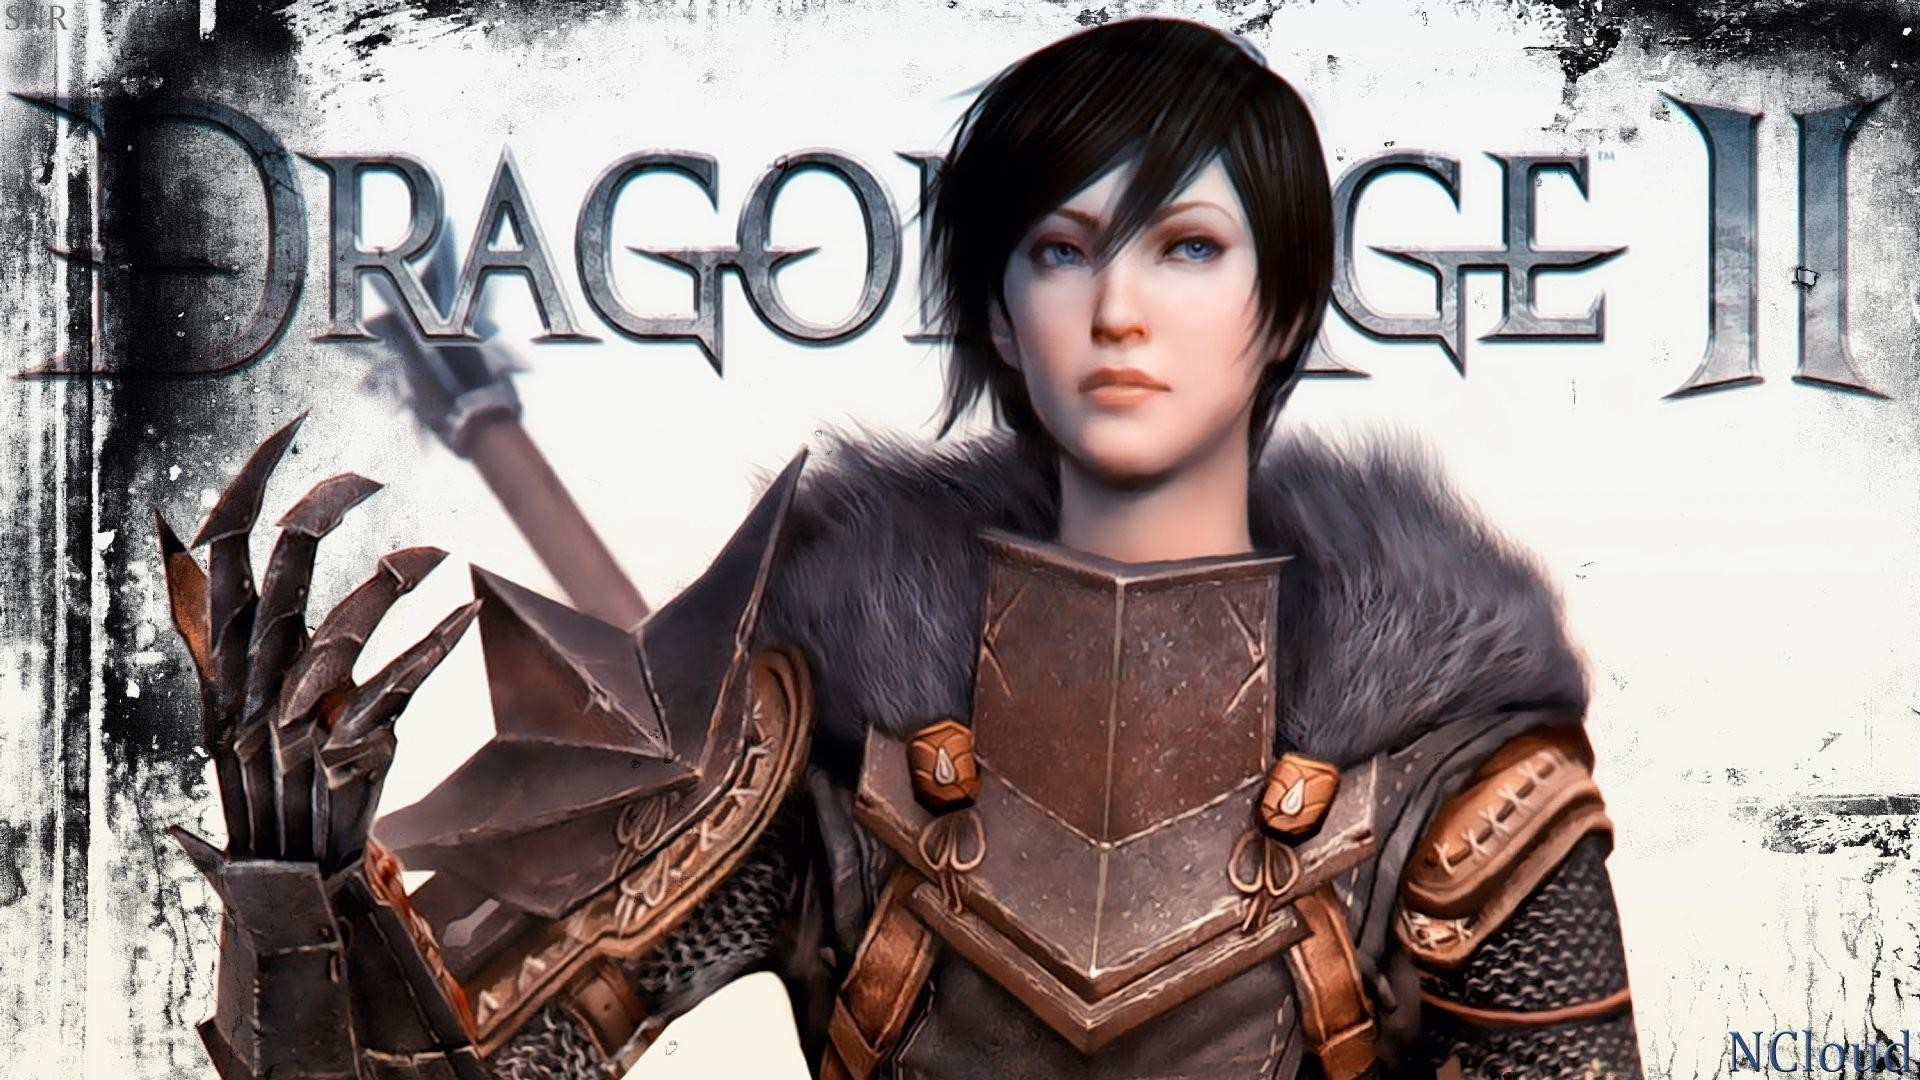 1920x1080 Games Movies Music Anime: My Dragon Age 2 Female Hawke Wallpaper 2